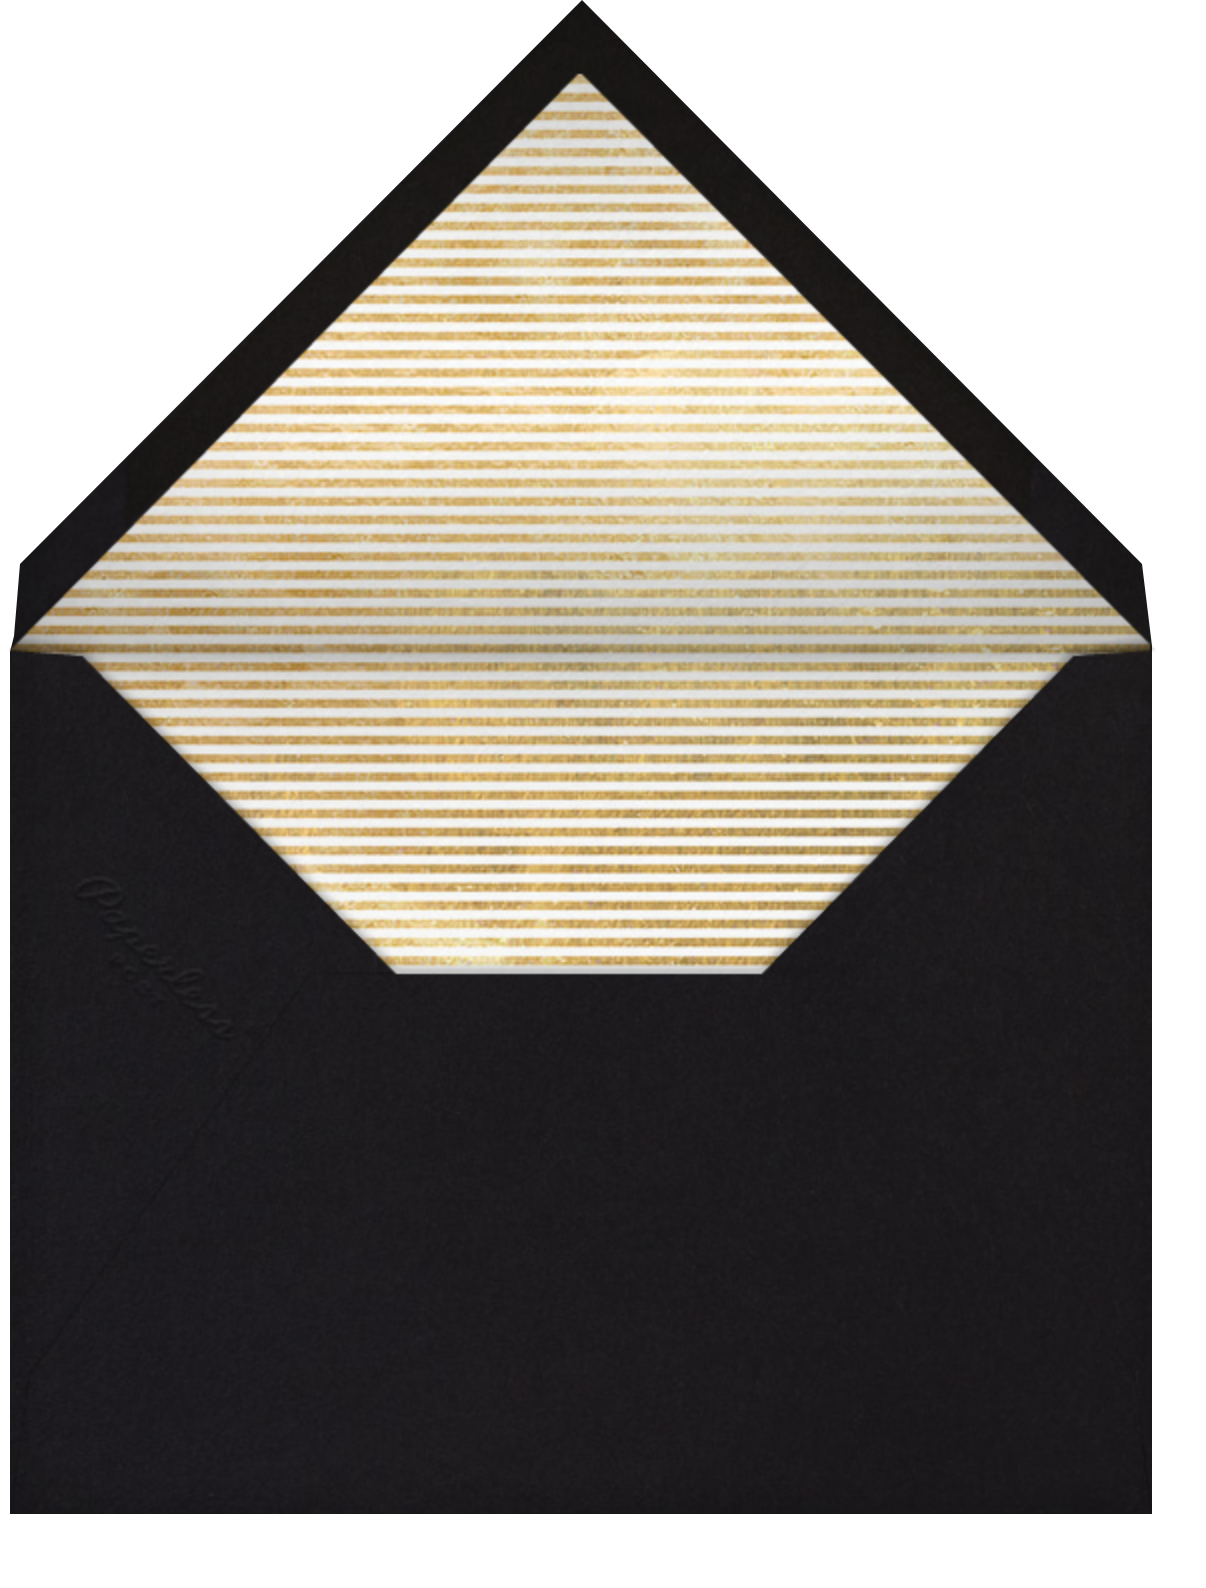 Snapshot Gold (Double Sided) - Tall - Paperless Post - Envelope